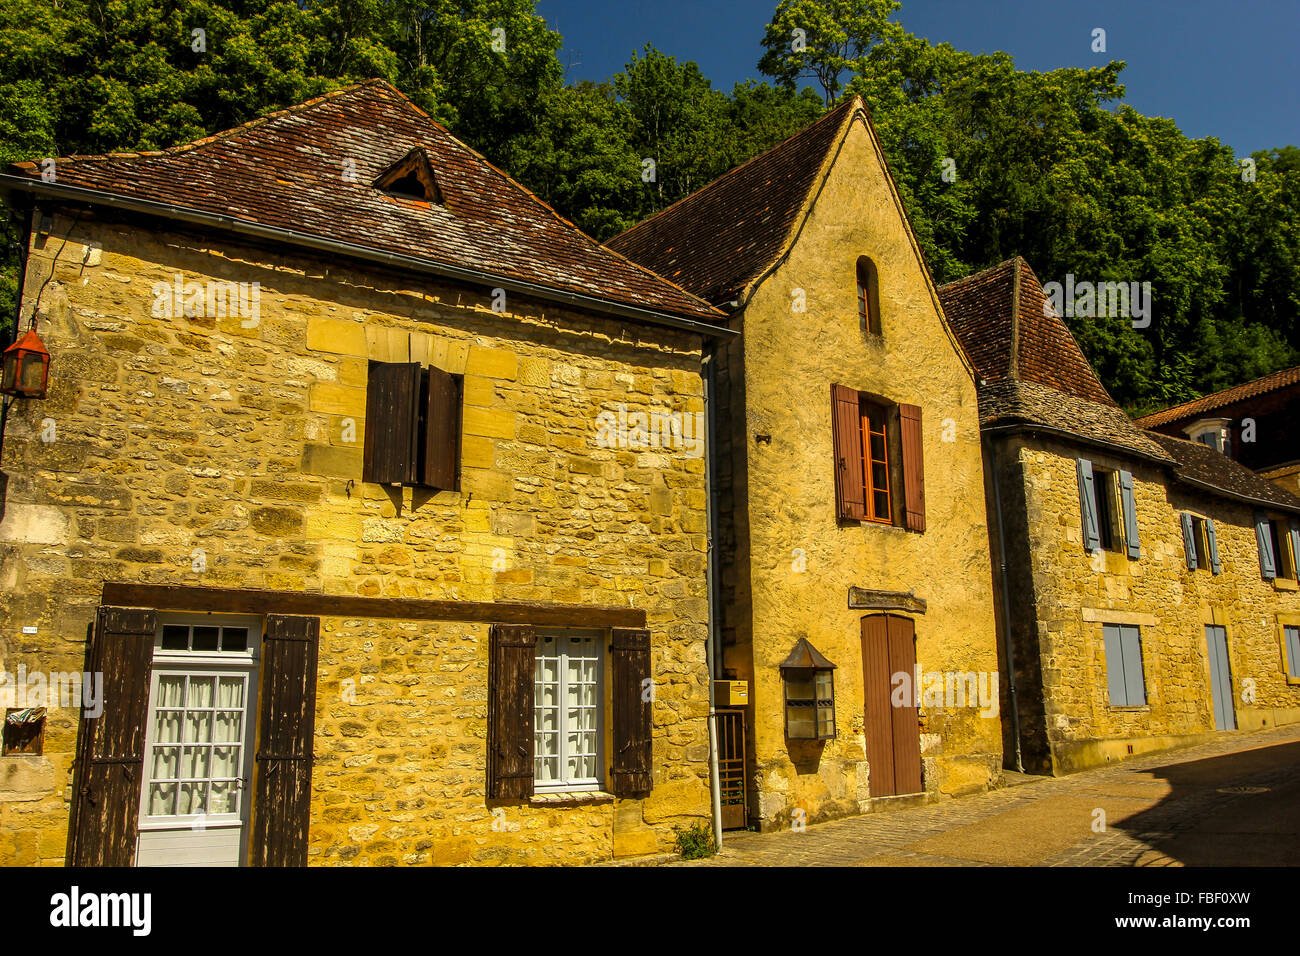 Small town in Dordogne France - Stock Image